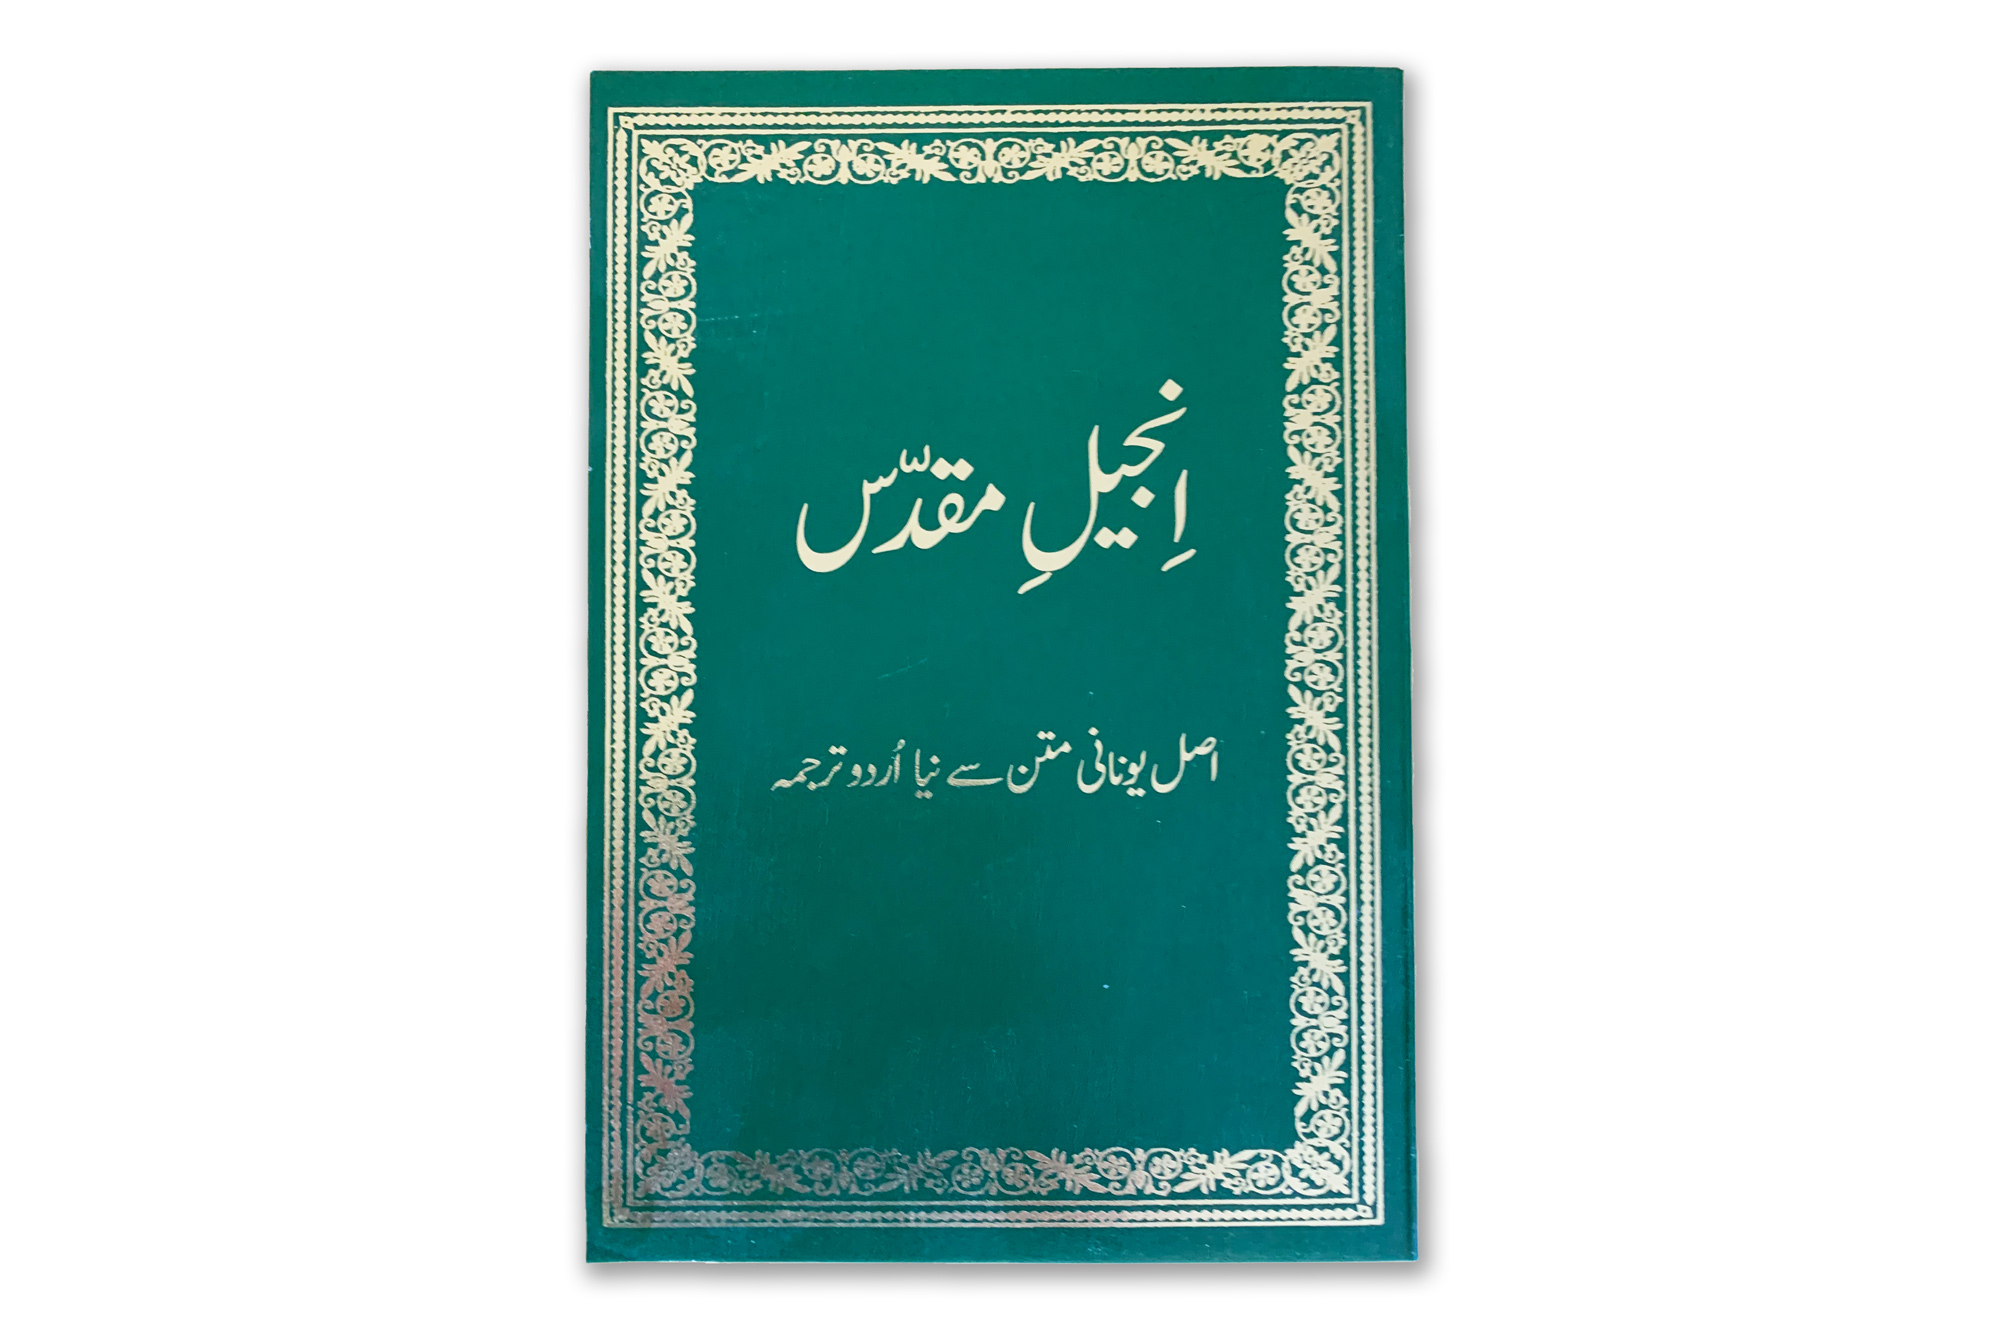 Neues Testament in Urdu